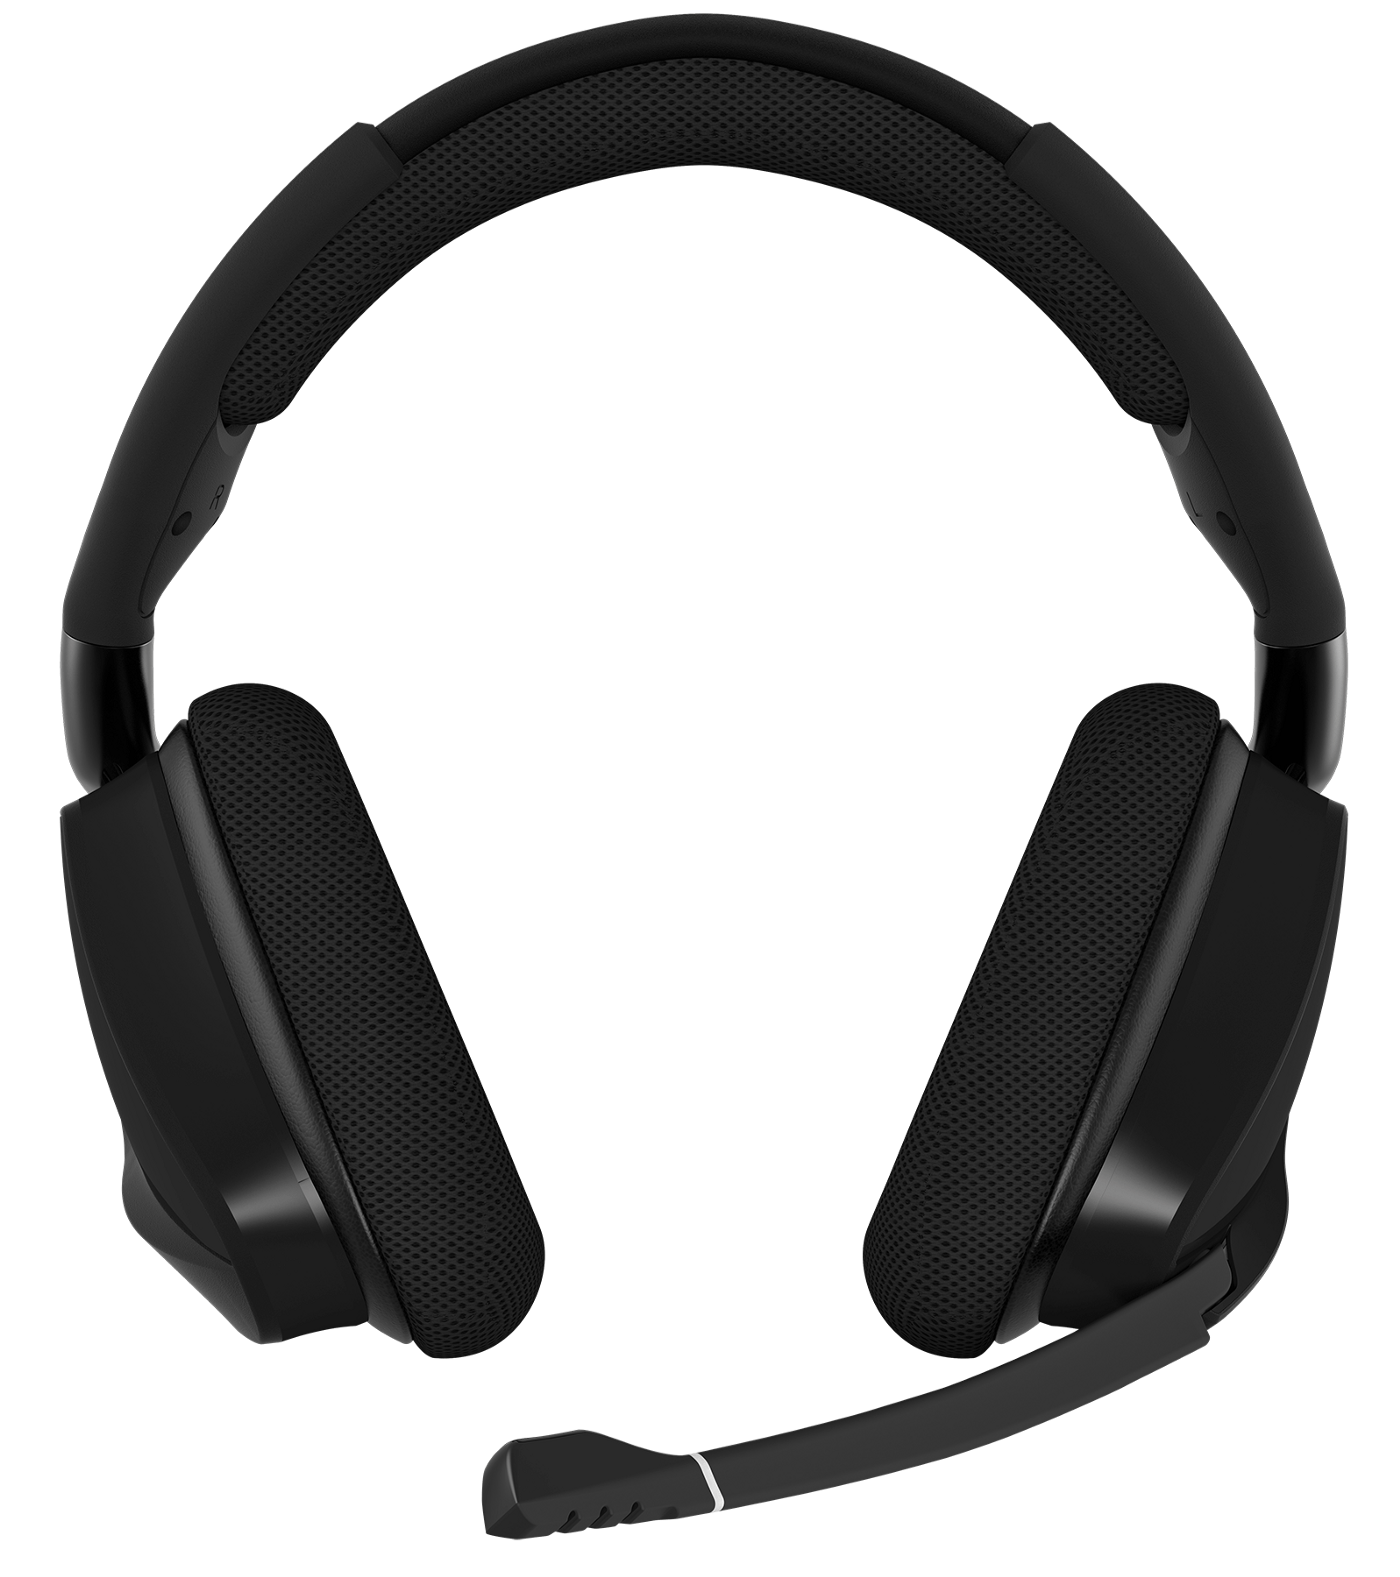 Corsair Void Pro RGB Wireless PC Gaming Headset Review